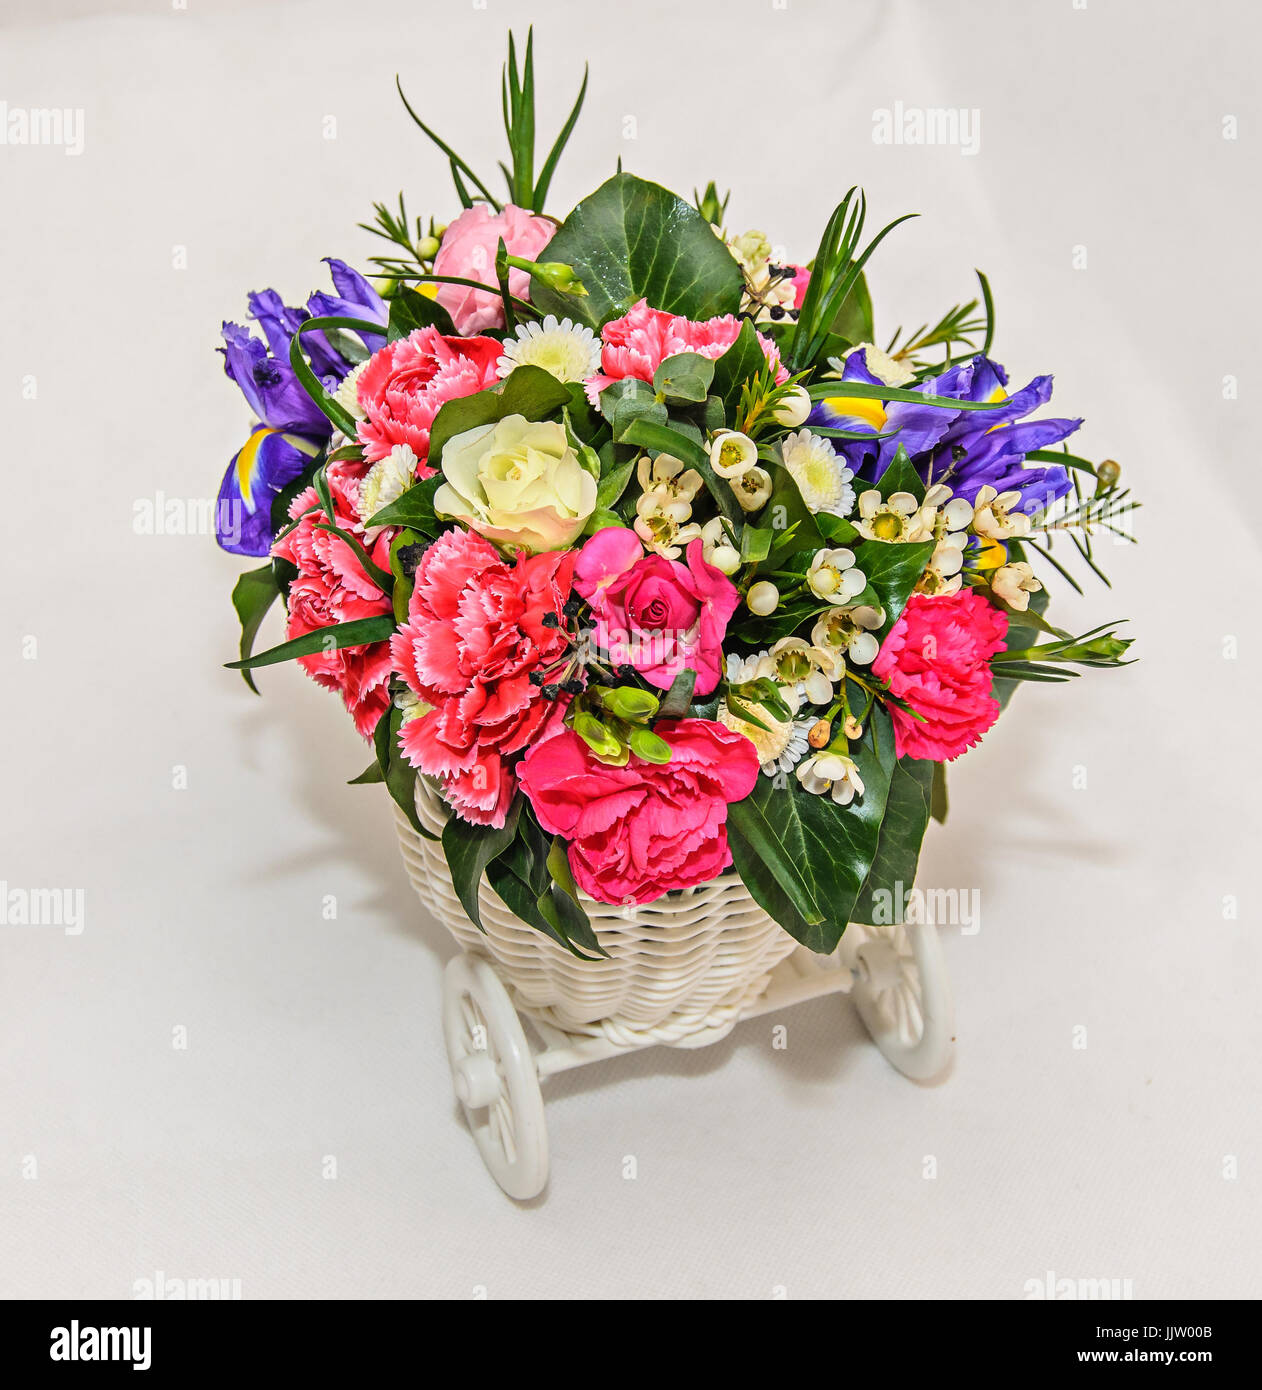 Floral Arrangement With White Bicycle And Colored Flowers Roses